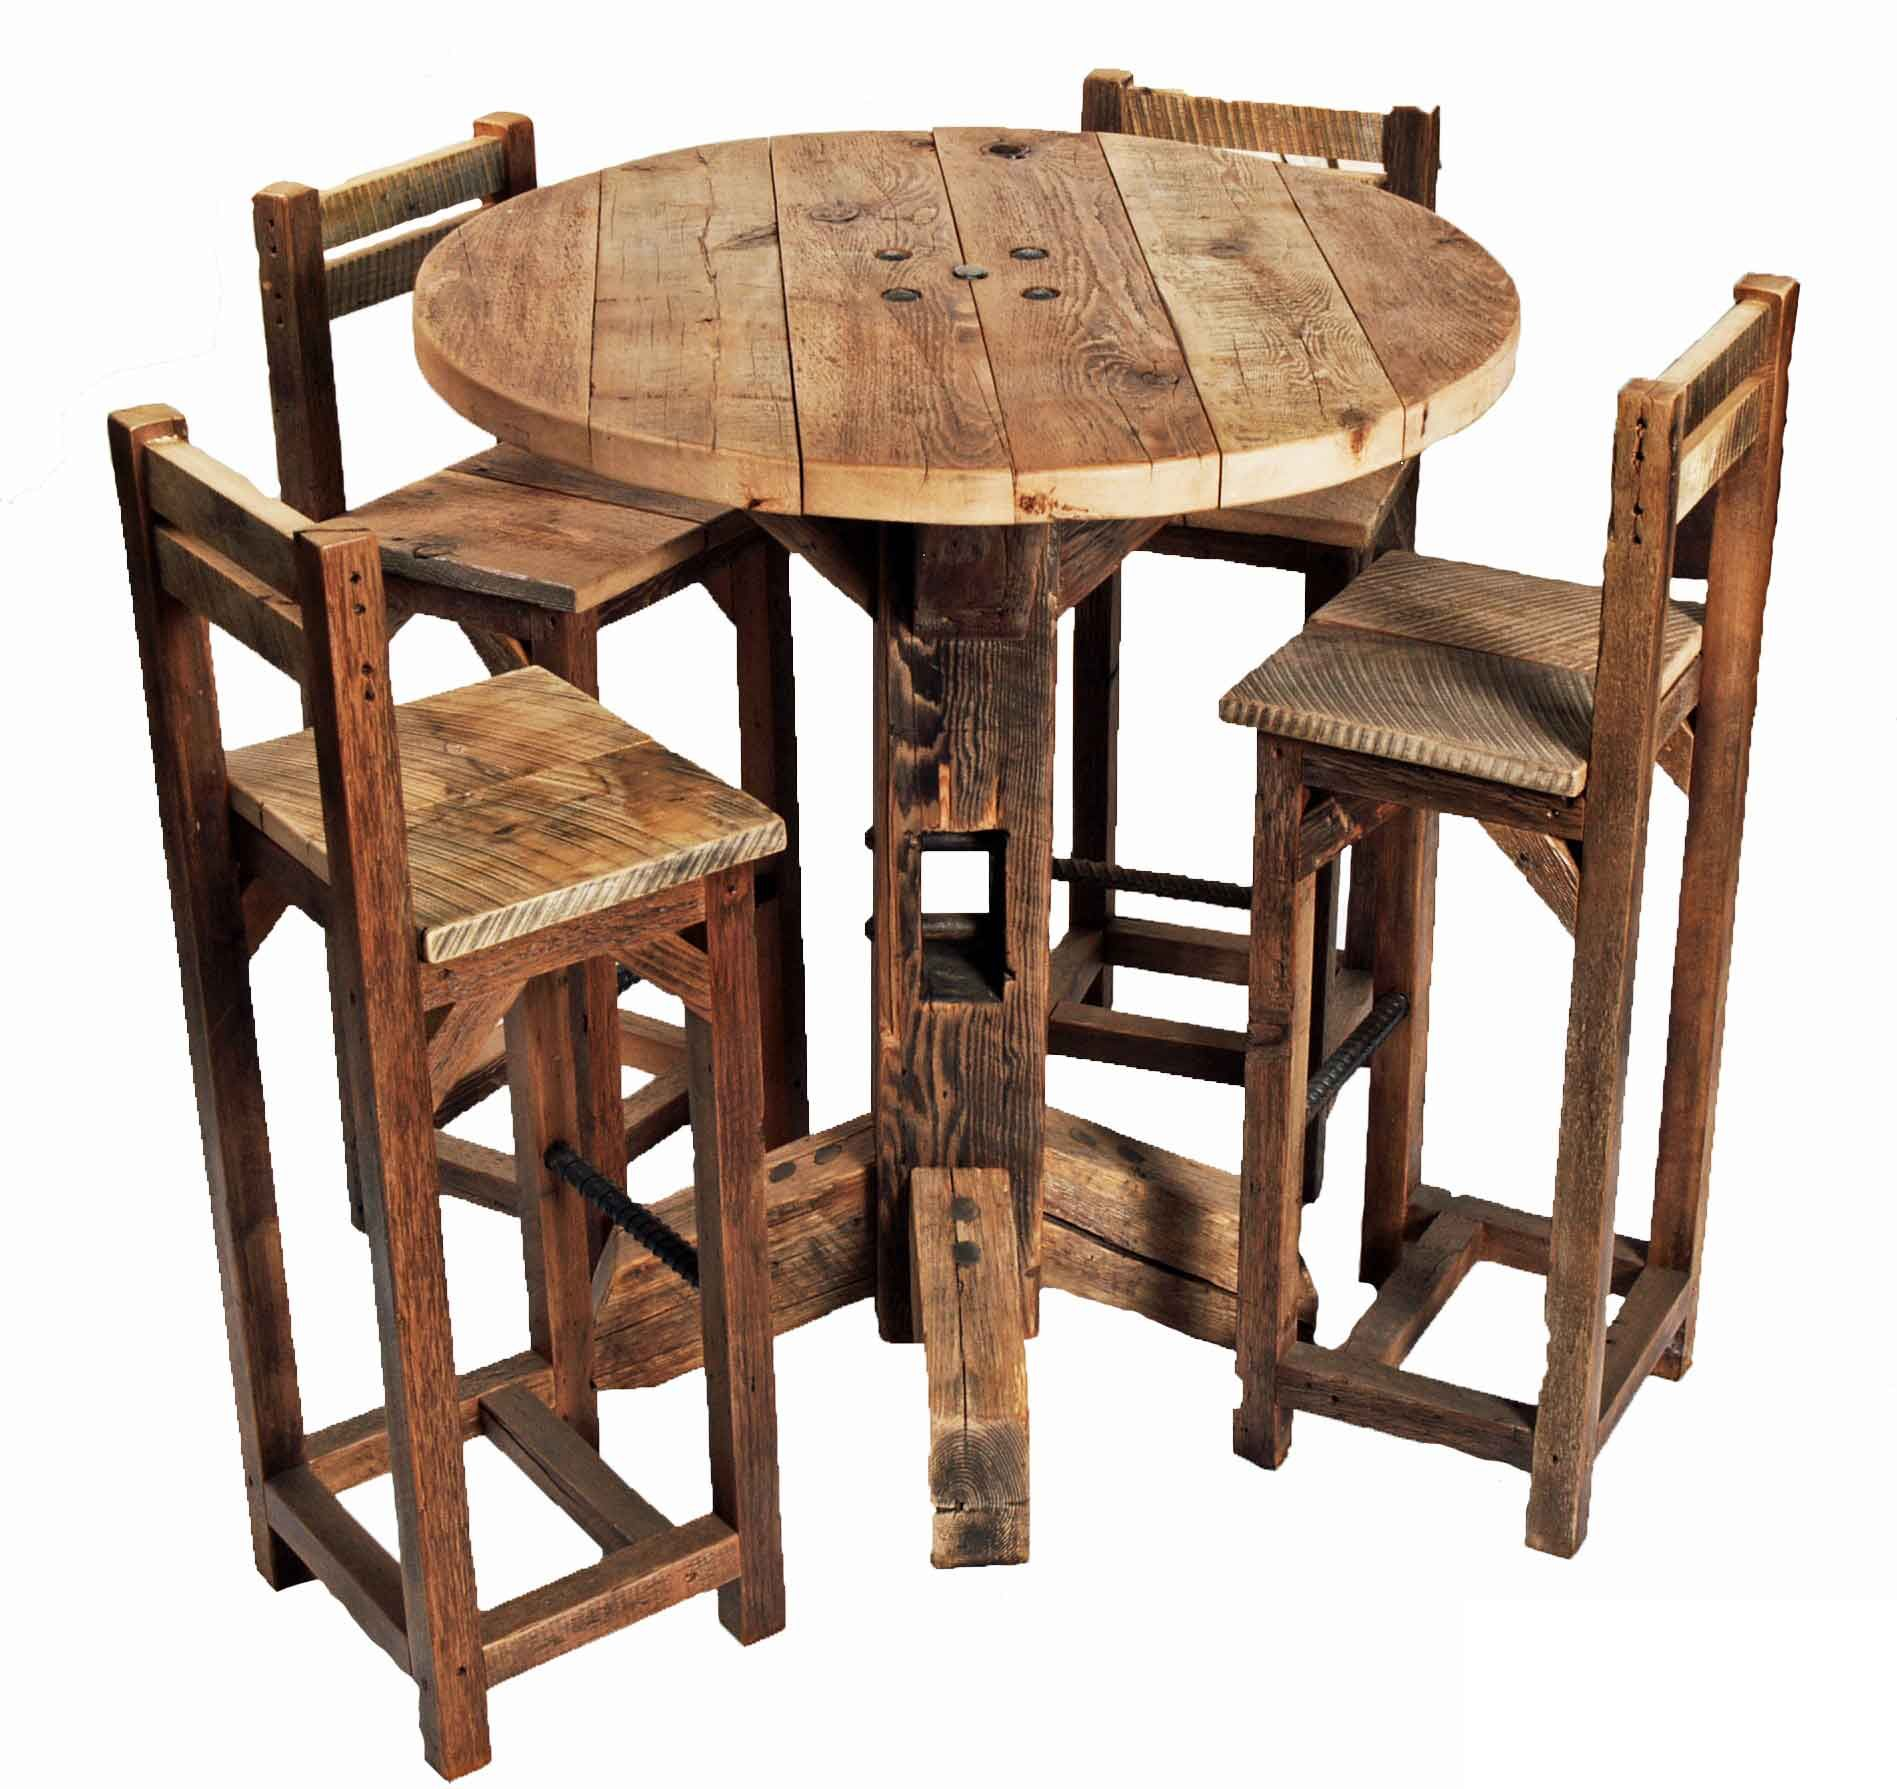 Small High Chair Wooden Swivel Desk Furniture Old Rustic Round Top Kitchen Table